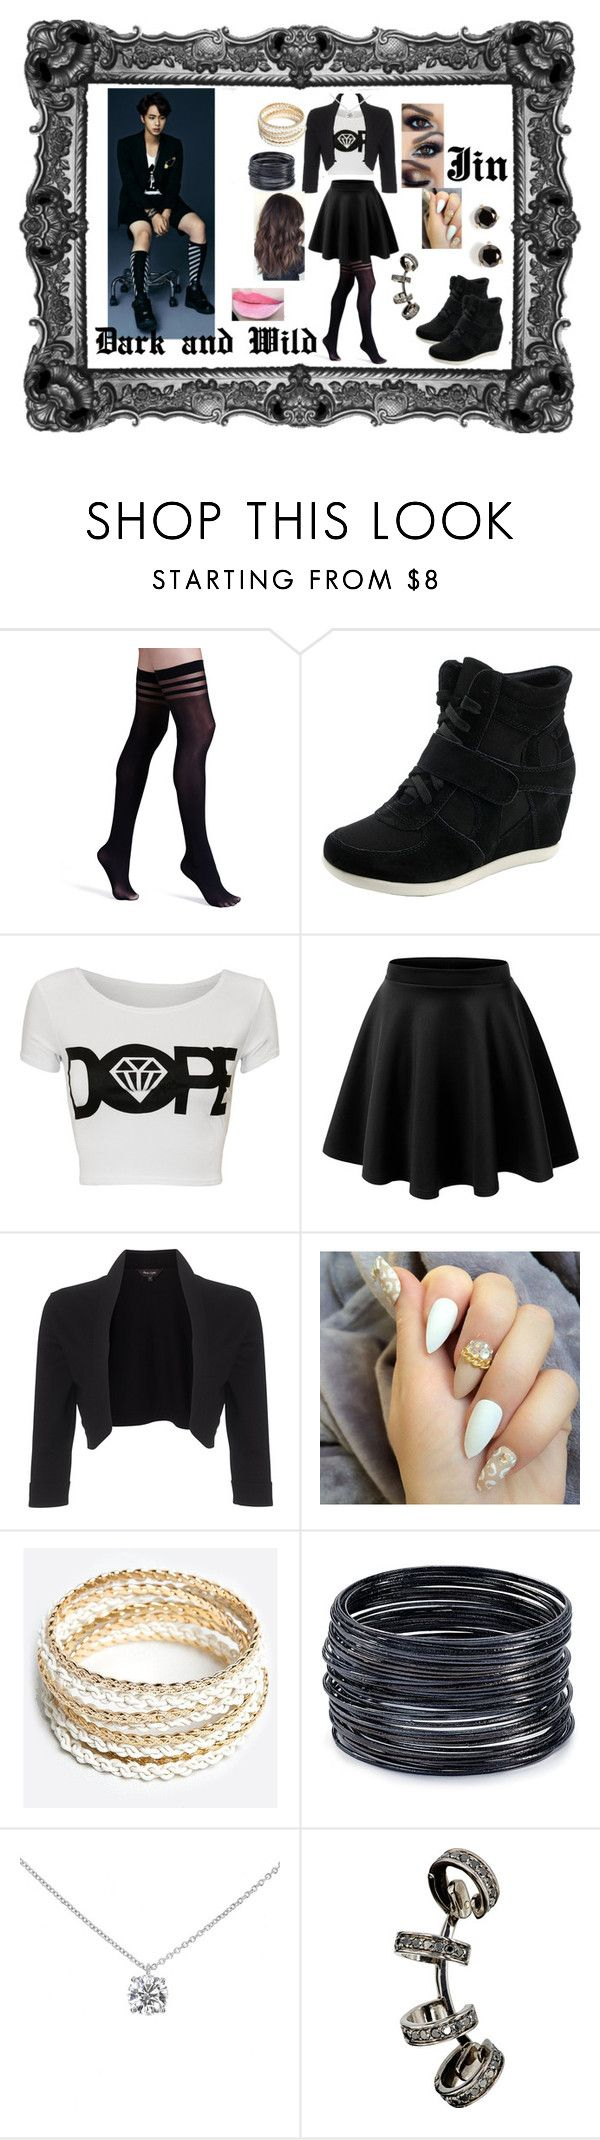 """""""Bts Jin dark and wild outfit"""" by princesscupid98 on Polyvore featuring Alice + Olivia, Phase Eight, ZooShoo, ABS by Allen Schwartz, Tiffany & Co., Repossi and Kate Spade"""